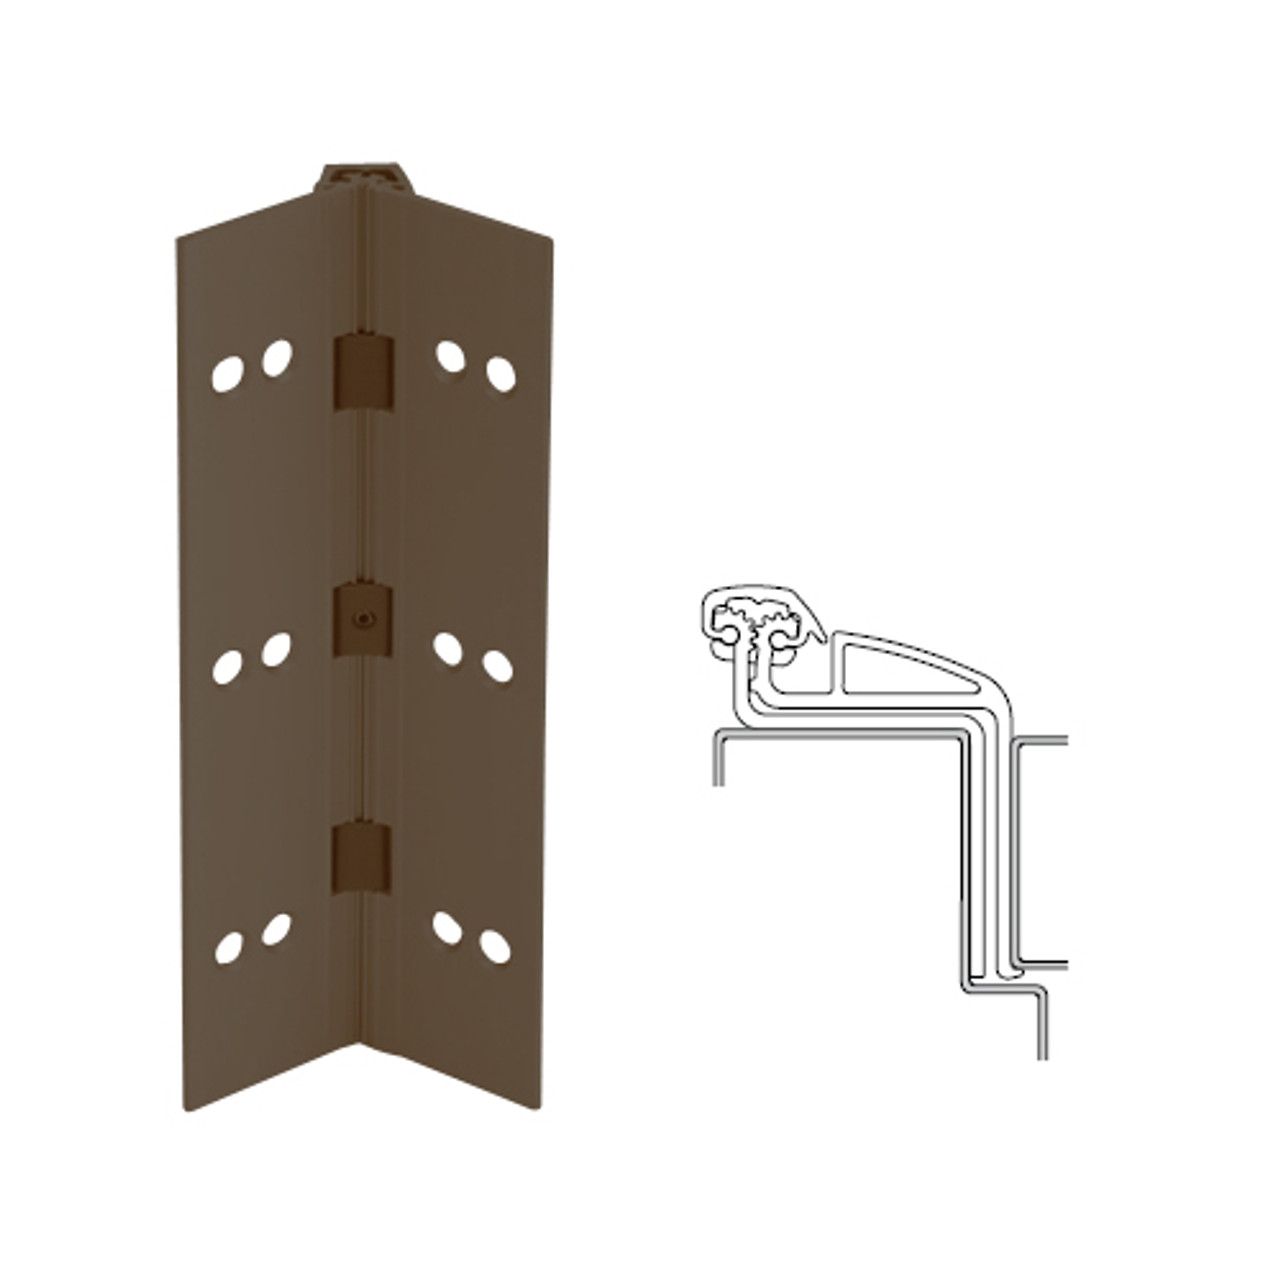 041XY-313AN-95-TF IVES Full Mortise Continuous Geared Hinges with Thread Forming Screws in Dark Bronze Anodized